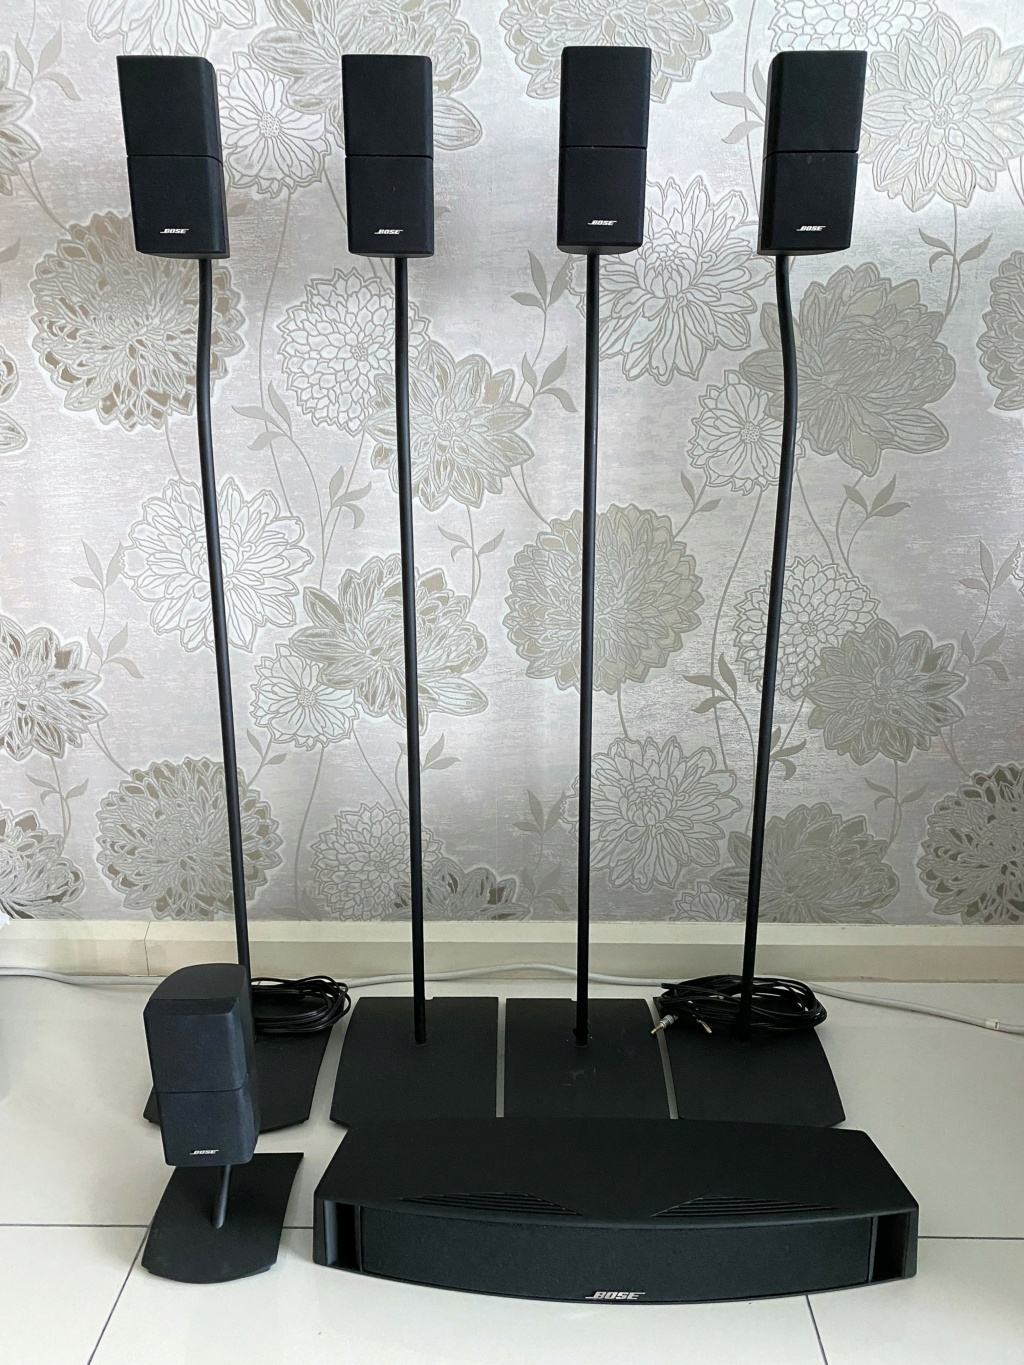 Bose Double Cube speakers with original stand Img_7312